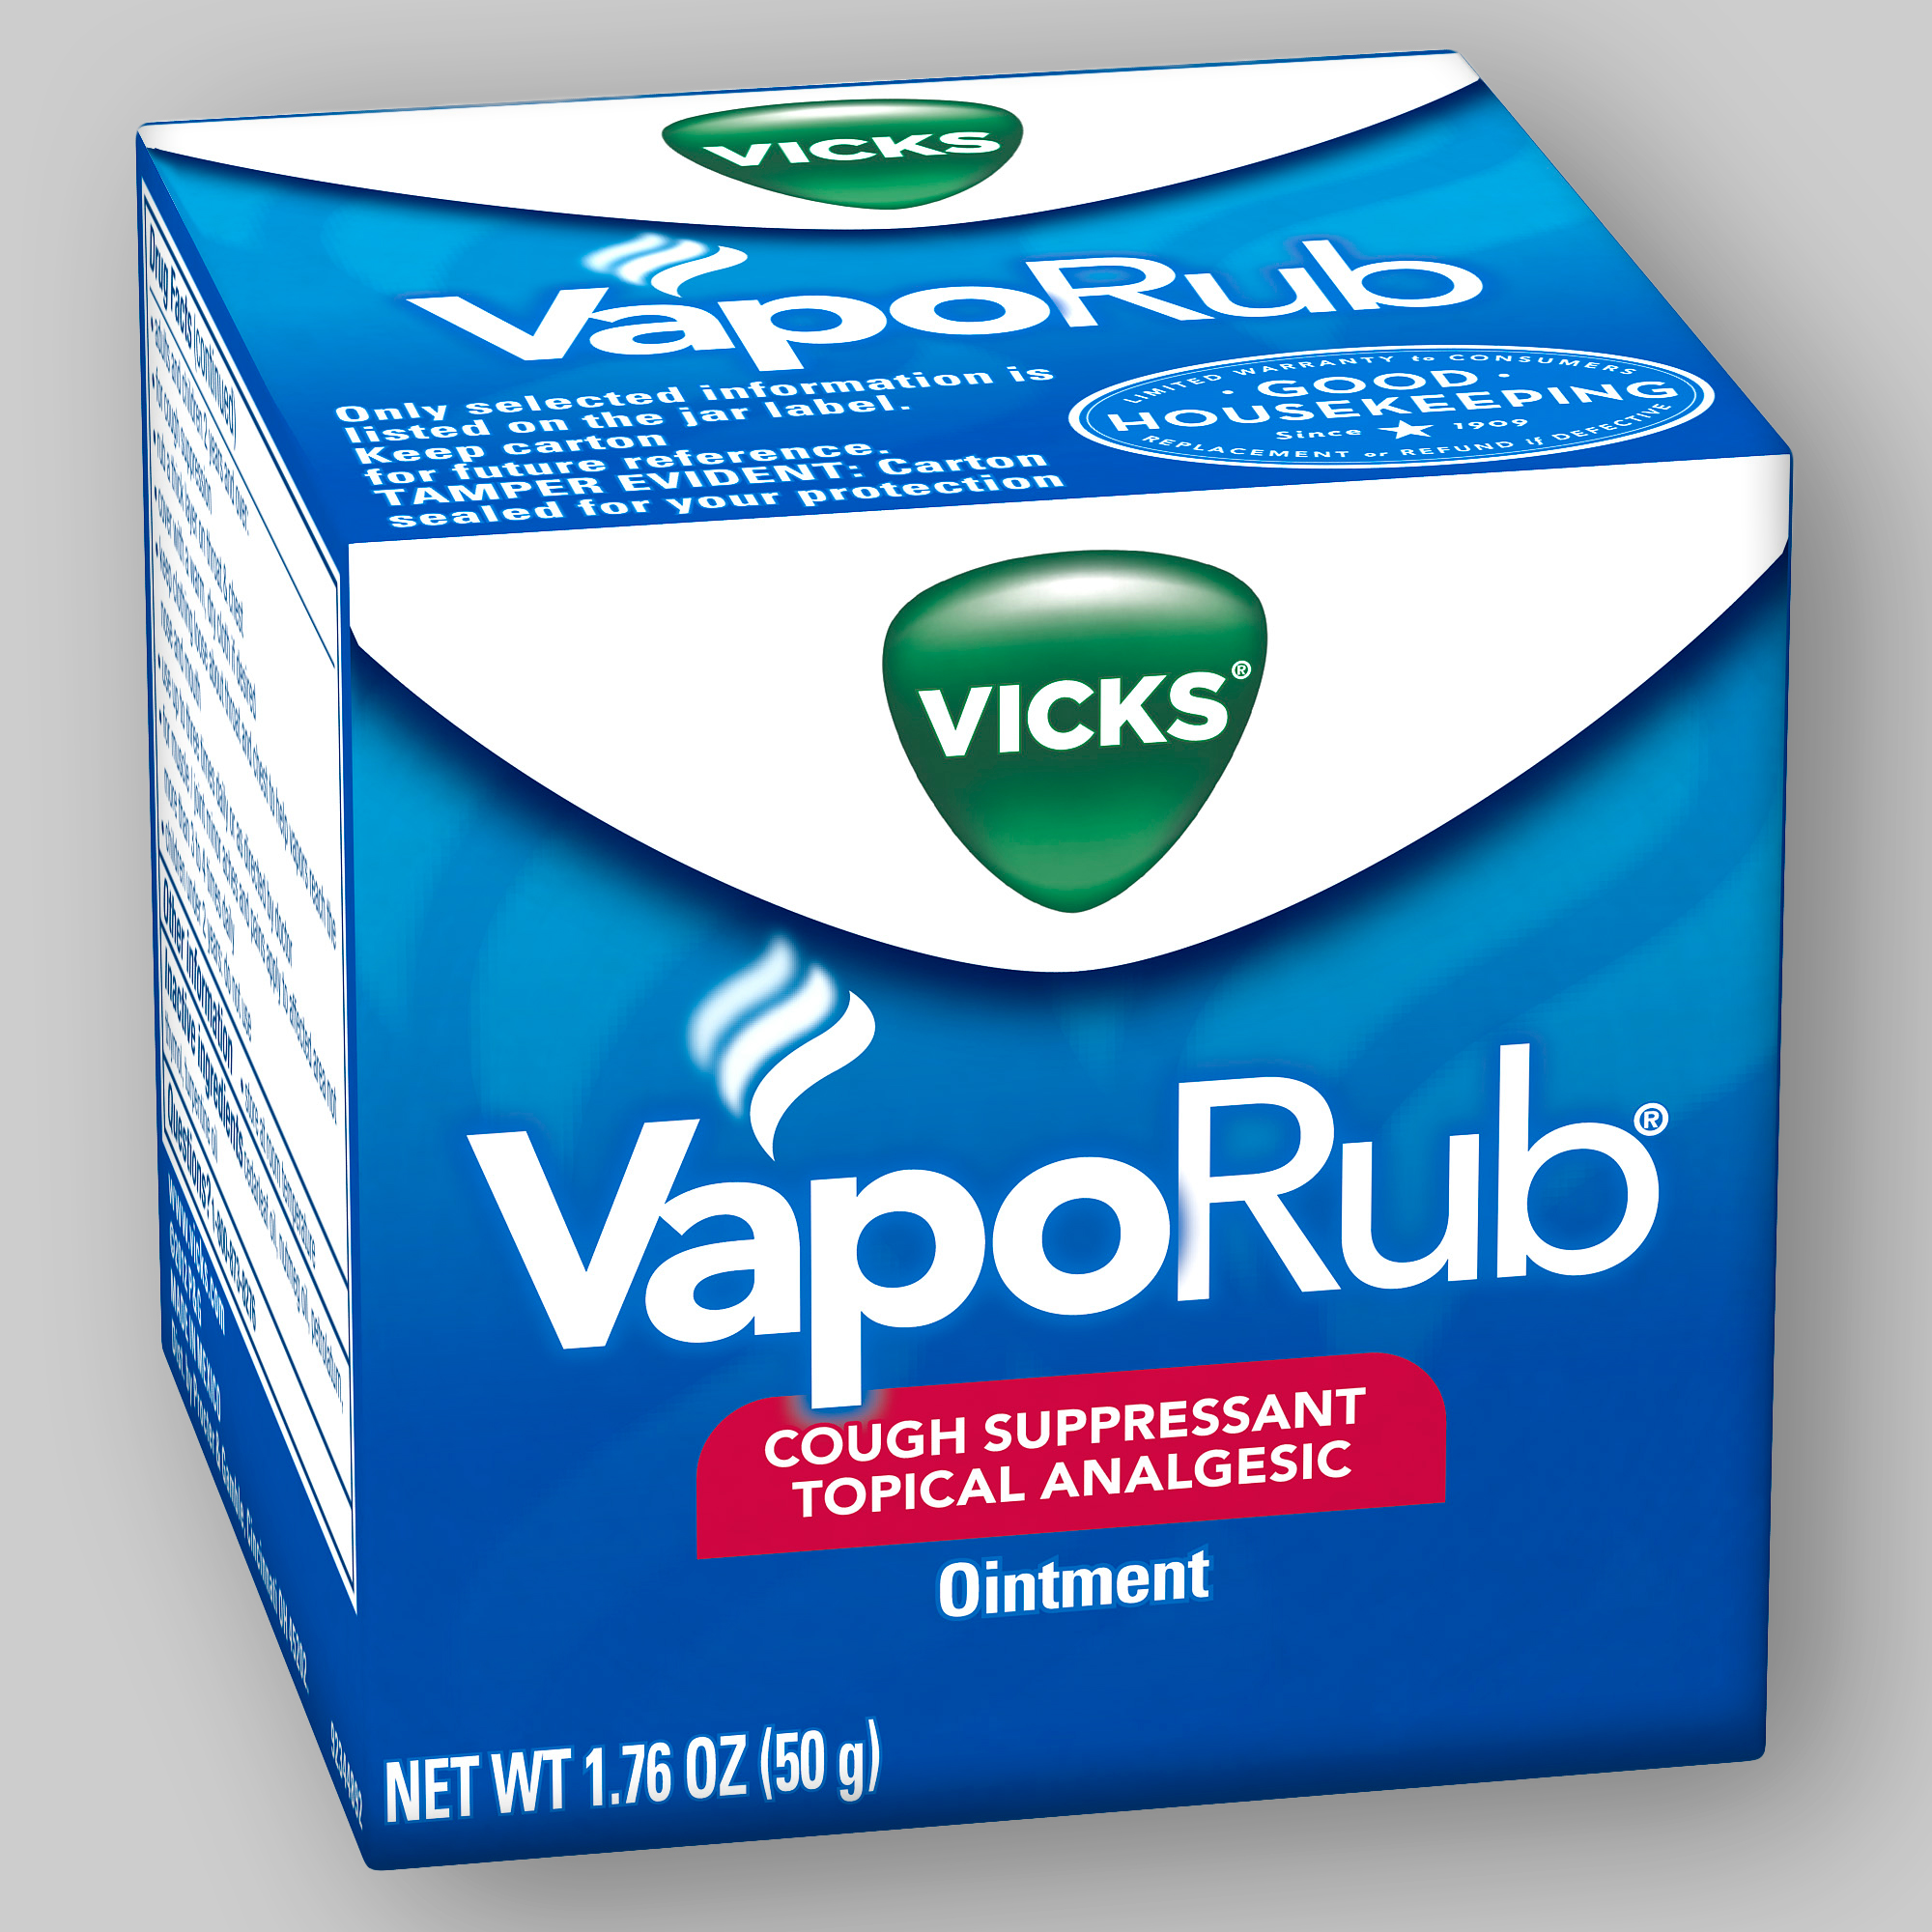 Can a soothing brand, Vicks, trusted by moms, find new ways to offer relief through health and wellness products?